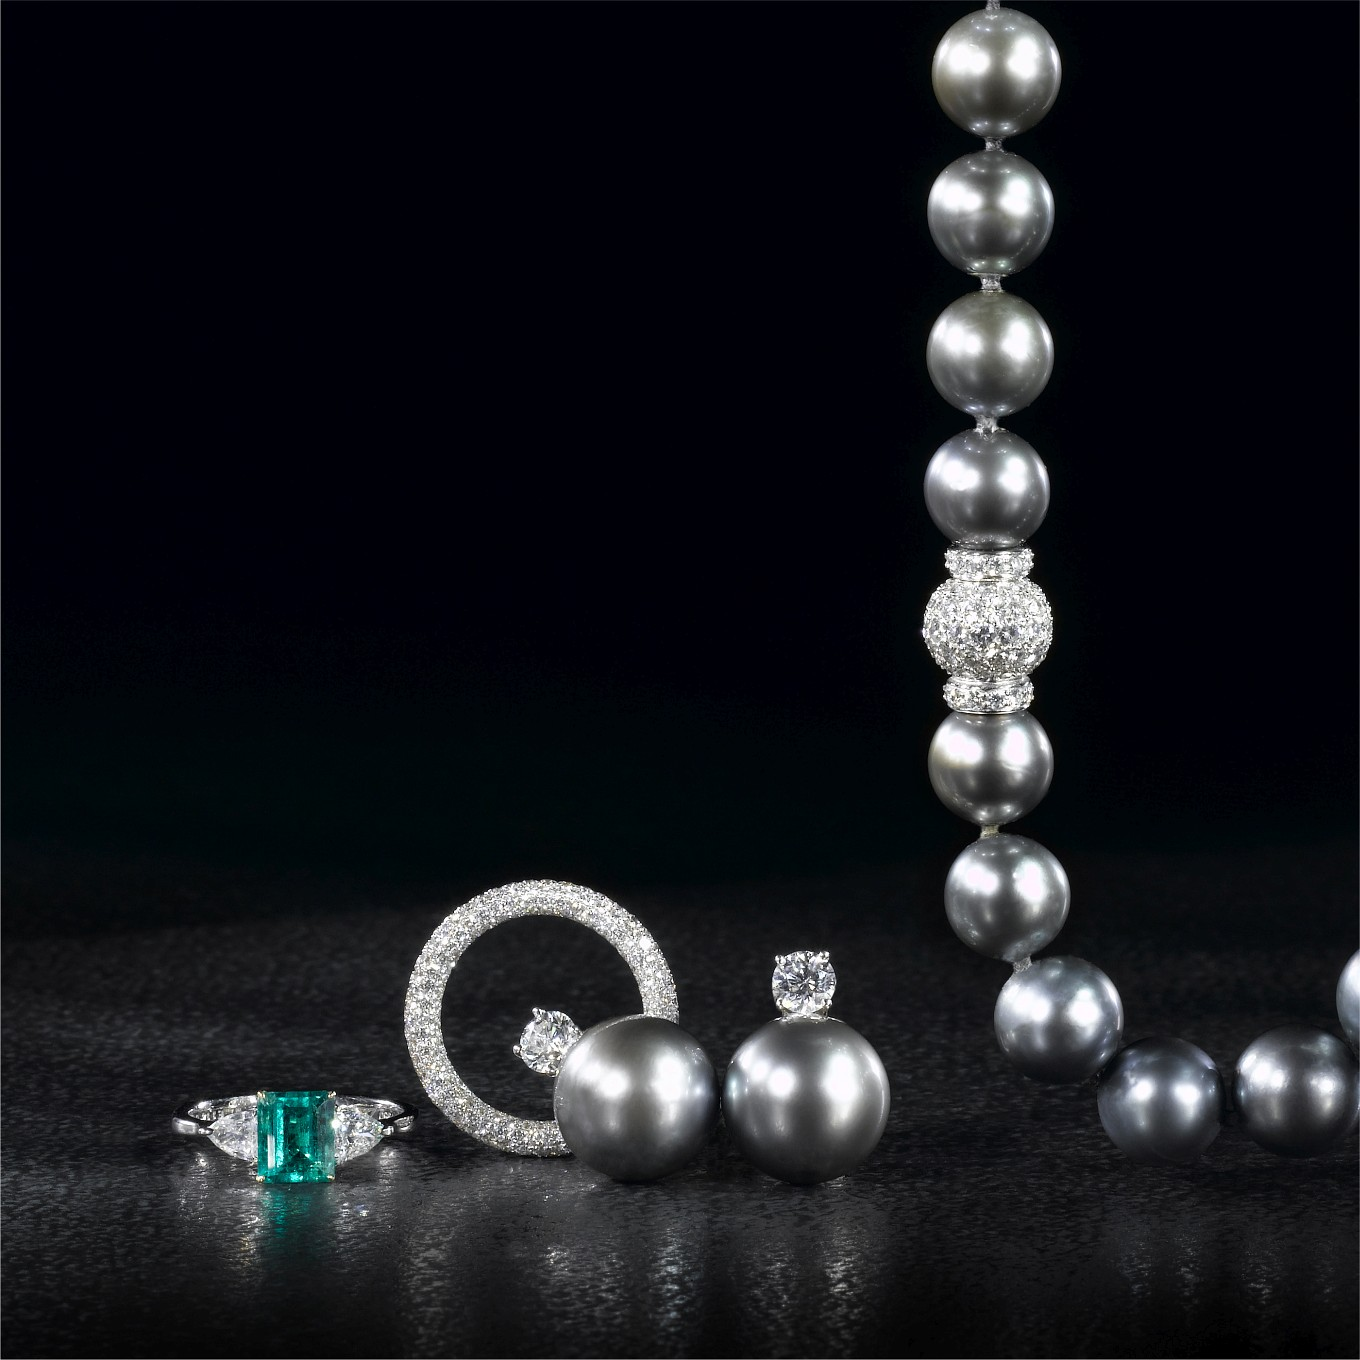 EMERALD CUT EMERALD & DIAMOND RING.  FULL DIAMOND PAVE ETERNITY BAND. TAHITIAN PEARL & DIAMOND EARRINGS. TAHITIAN PEARL NECKLACE WITH PAVE DIAMOND CLASP